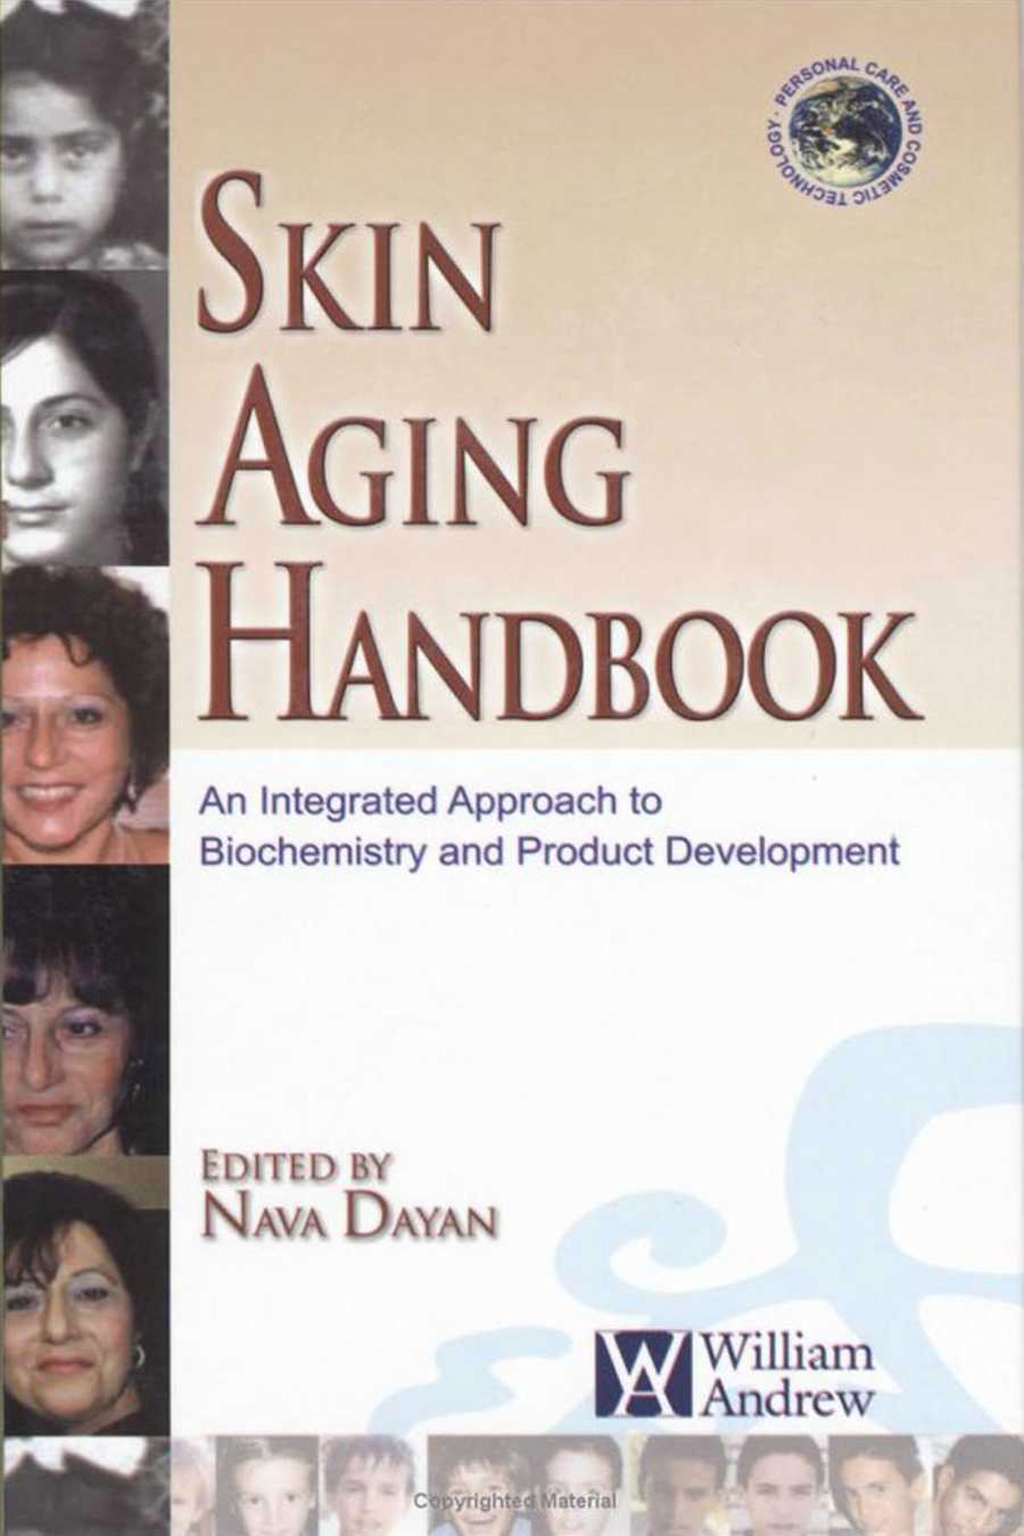 Skin Aging Handbook An Integrated Approach to Biochemistry and Product Development